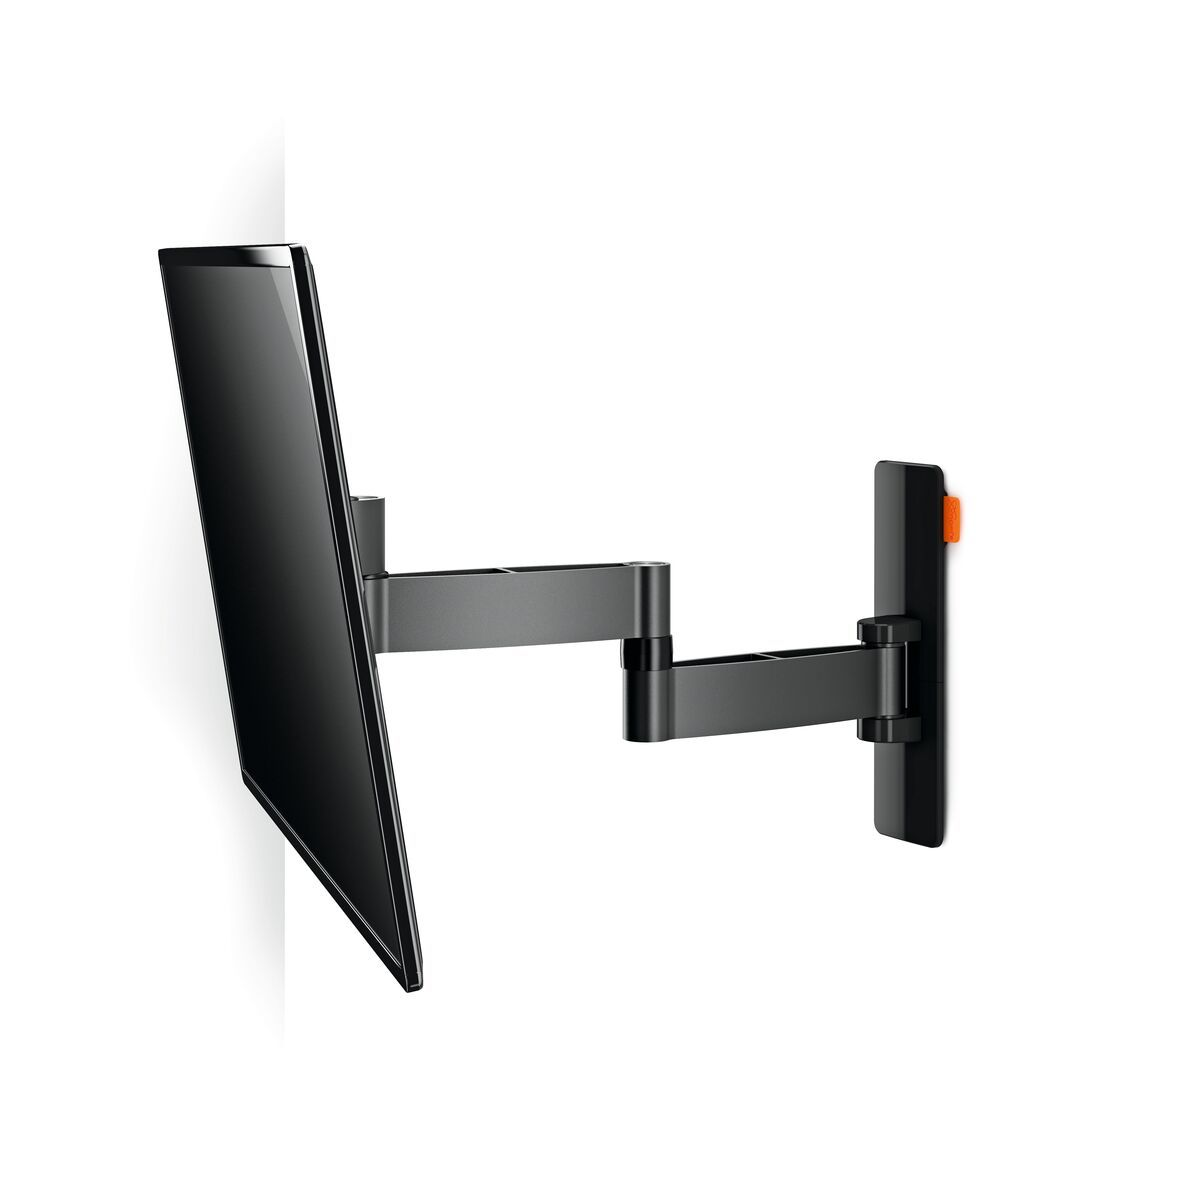 Vogel's WALL 3145 Full-Motion TV Wall Mount (black) - Suitable for Full motion (up to 180°) - Suitable for Tilt -10°/+10° - Suitable for White wall